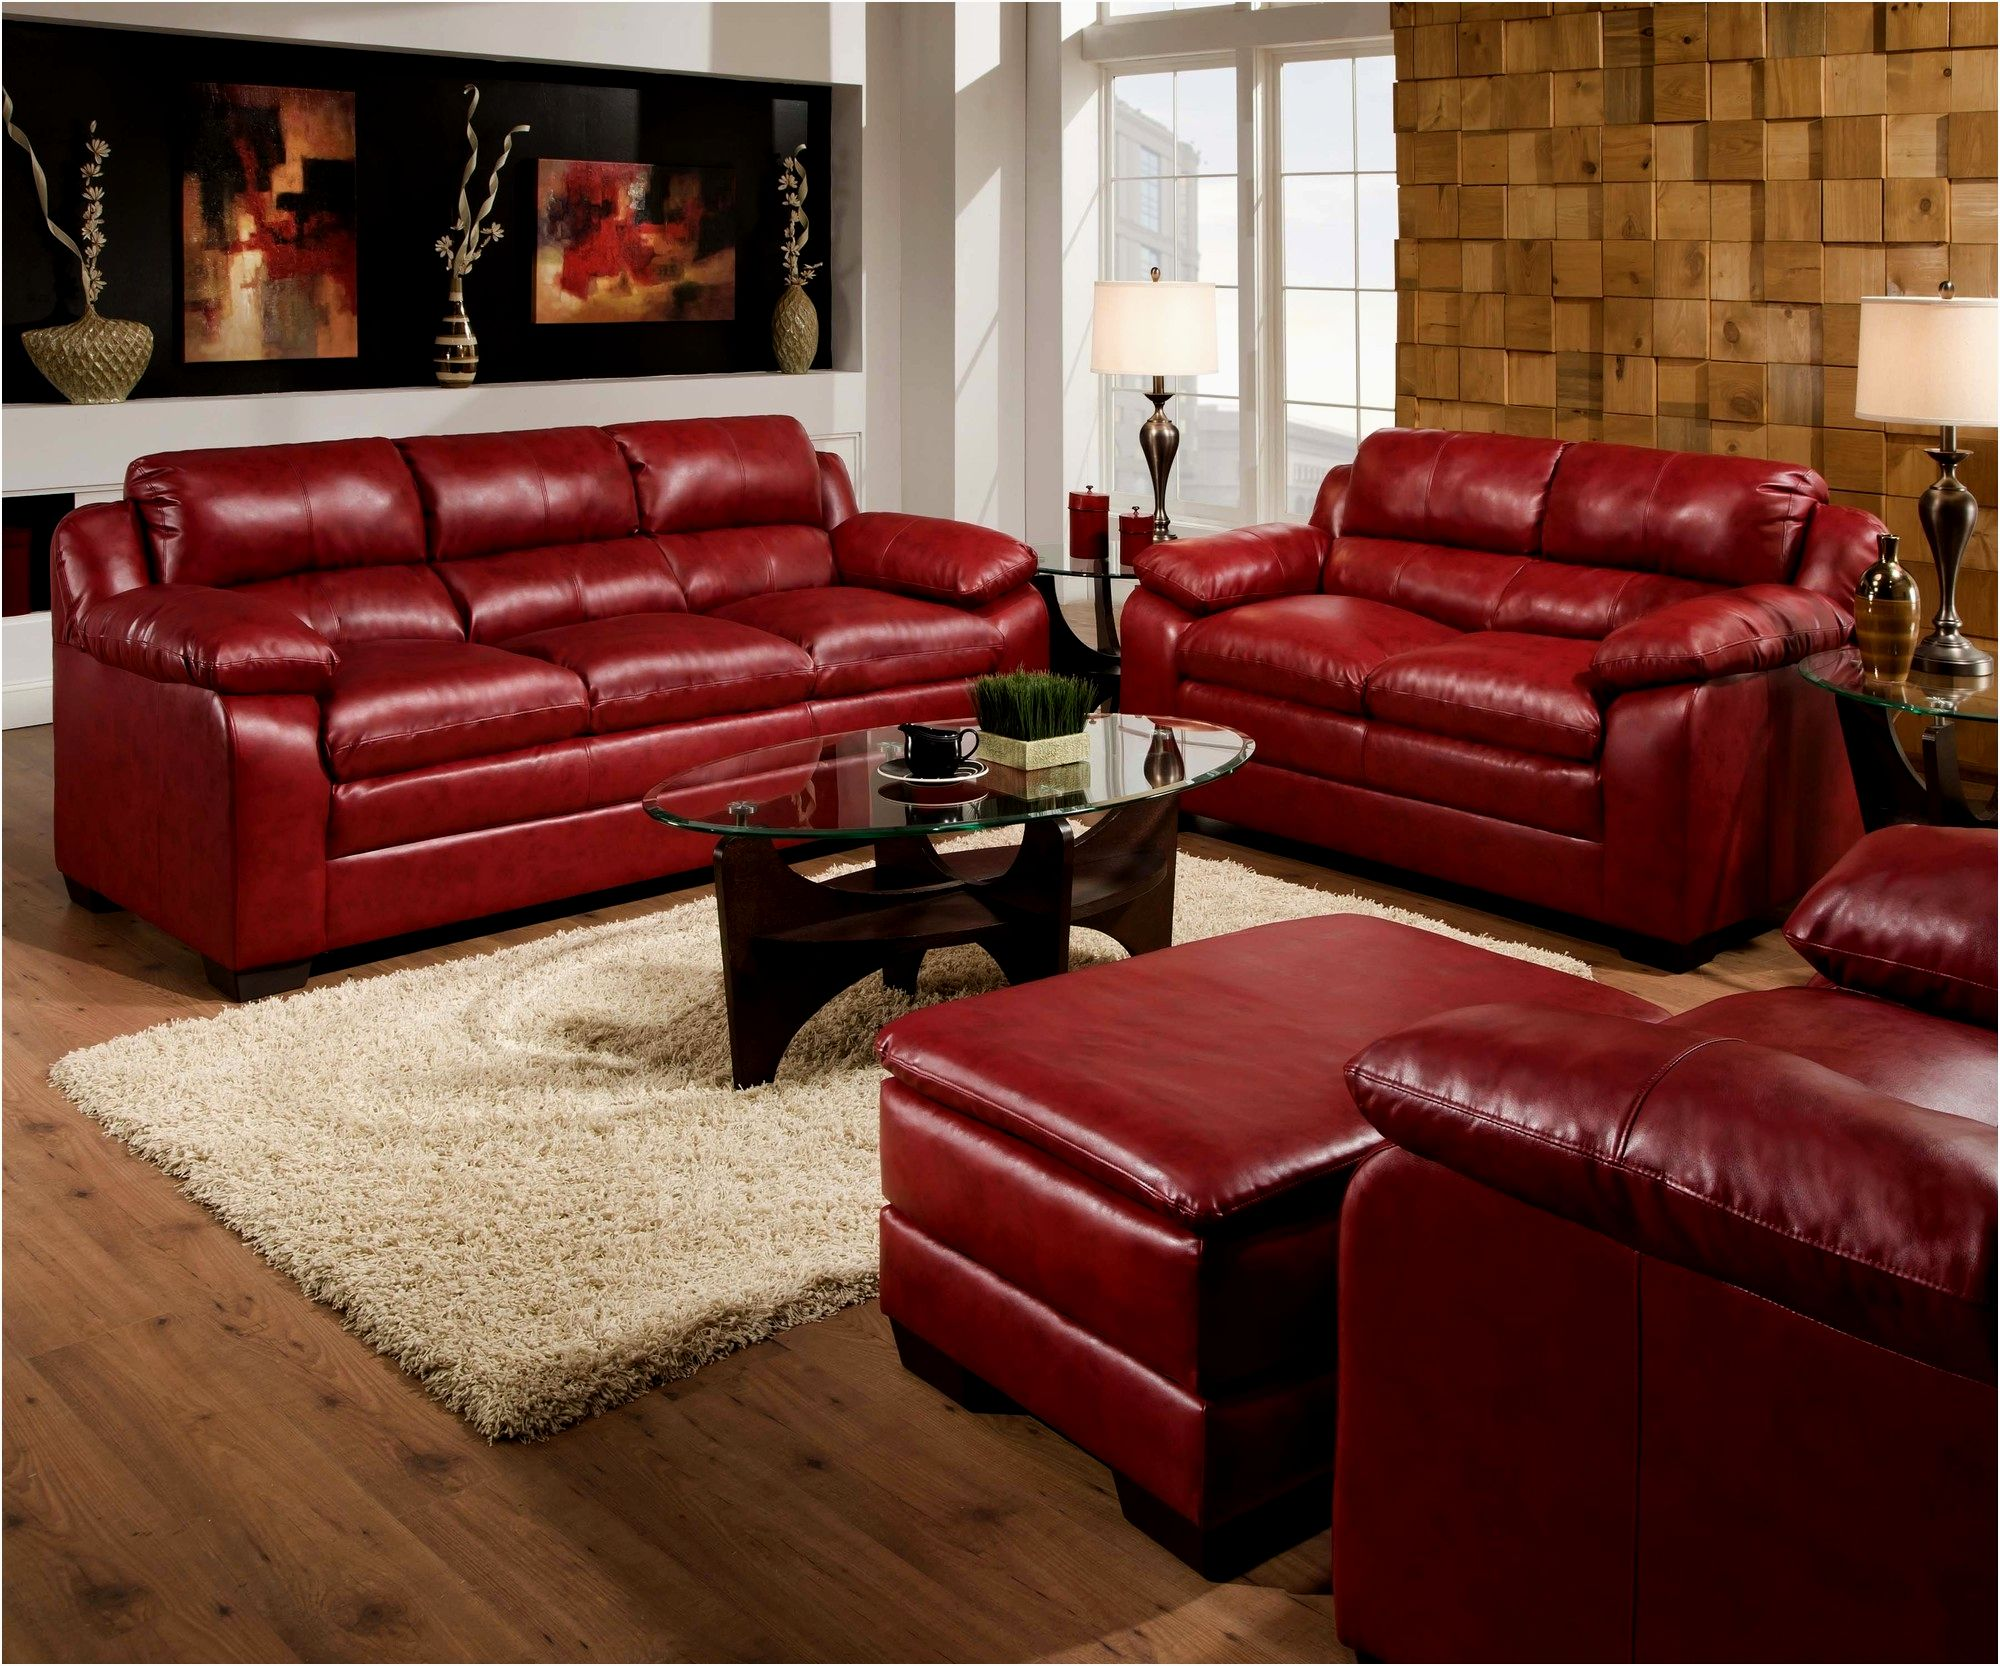 excellent recliner sectional sofa photograph-Wonderful Recliner Sectional sofa Plan